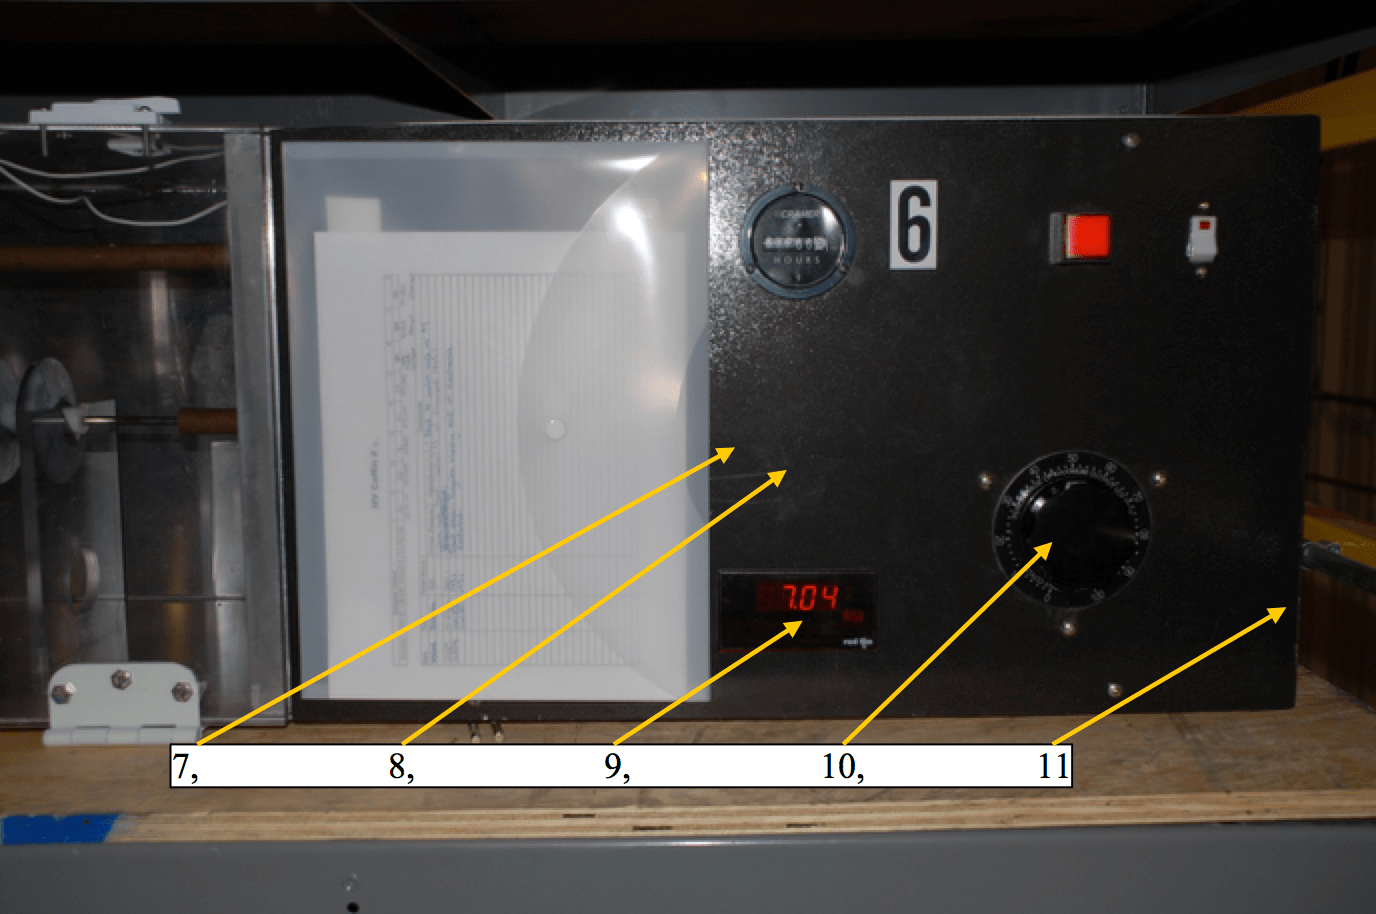 polymer insulator Small-Scale Test Chamber & Criteria for Evaluating Polymer Insulators Control panel